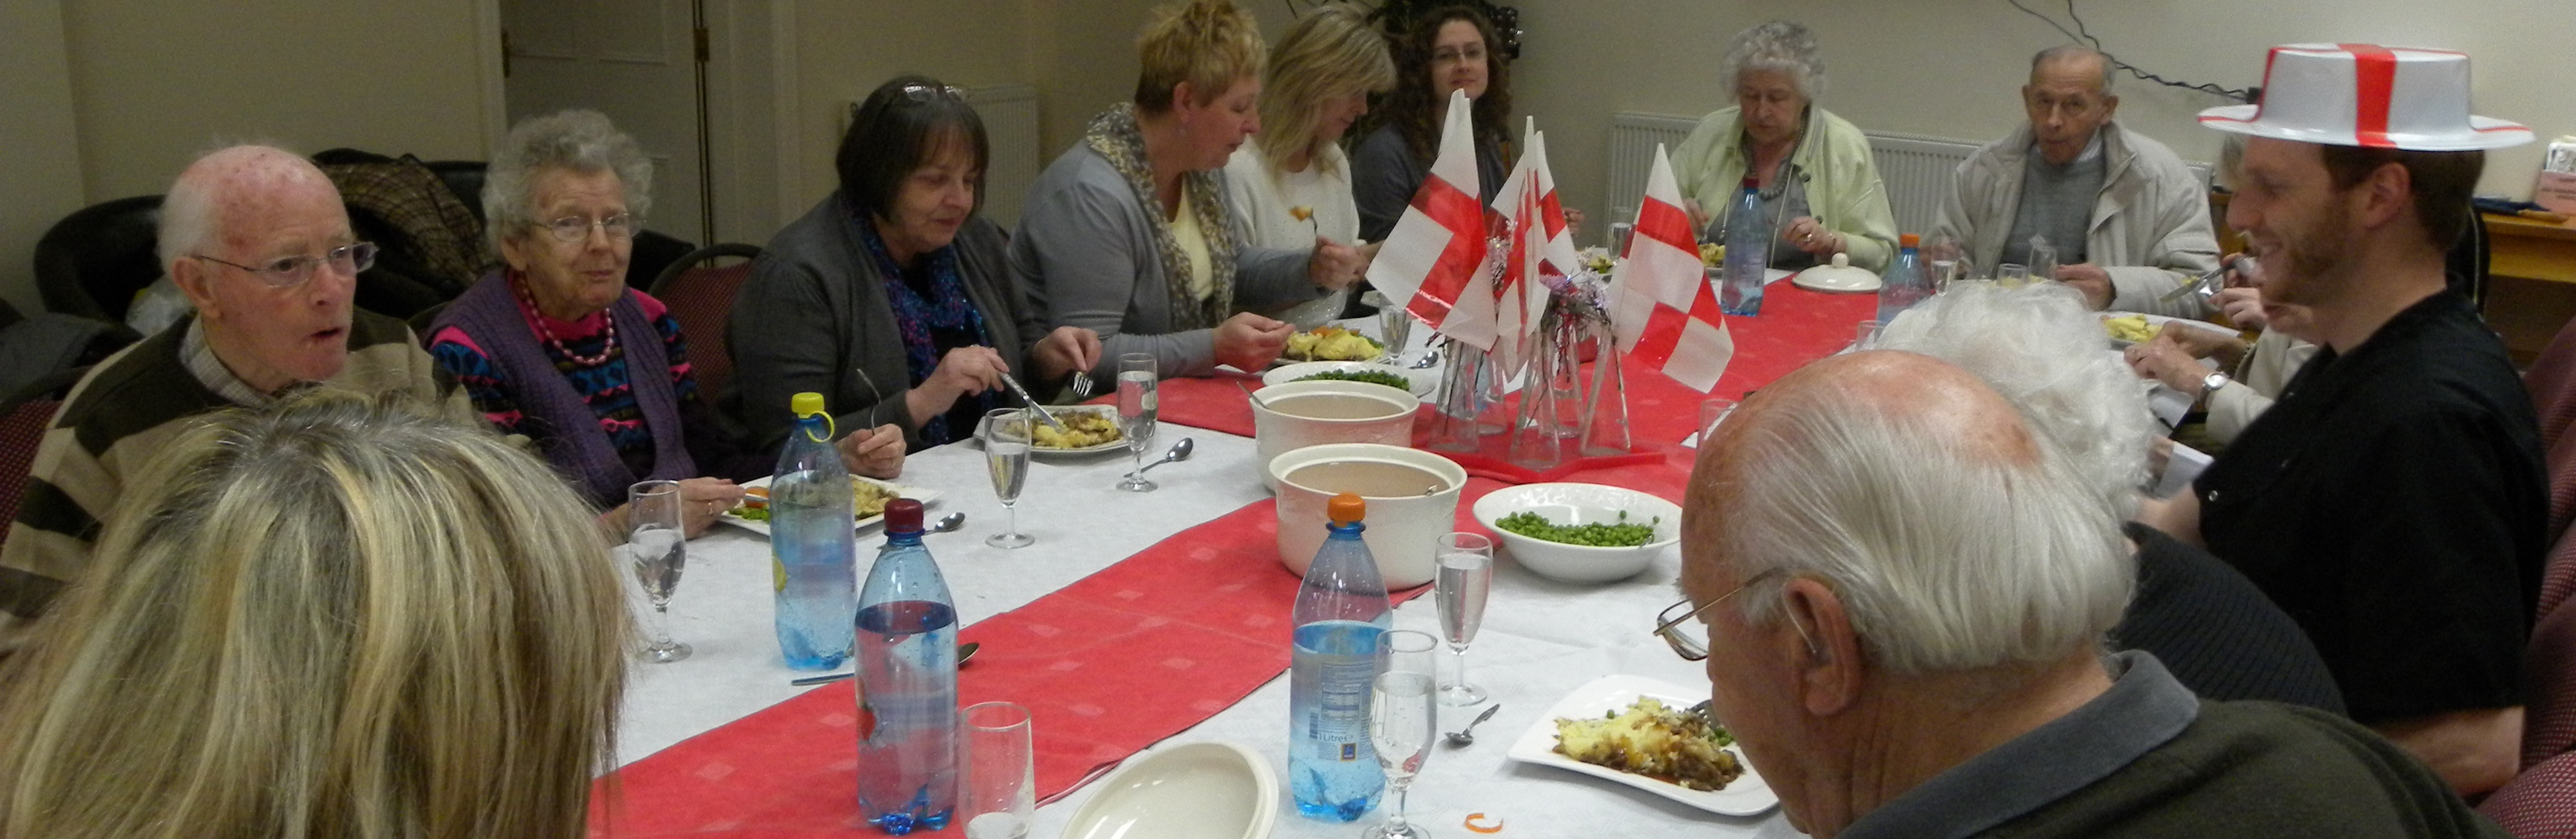 St George's Day Meal